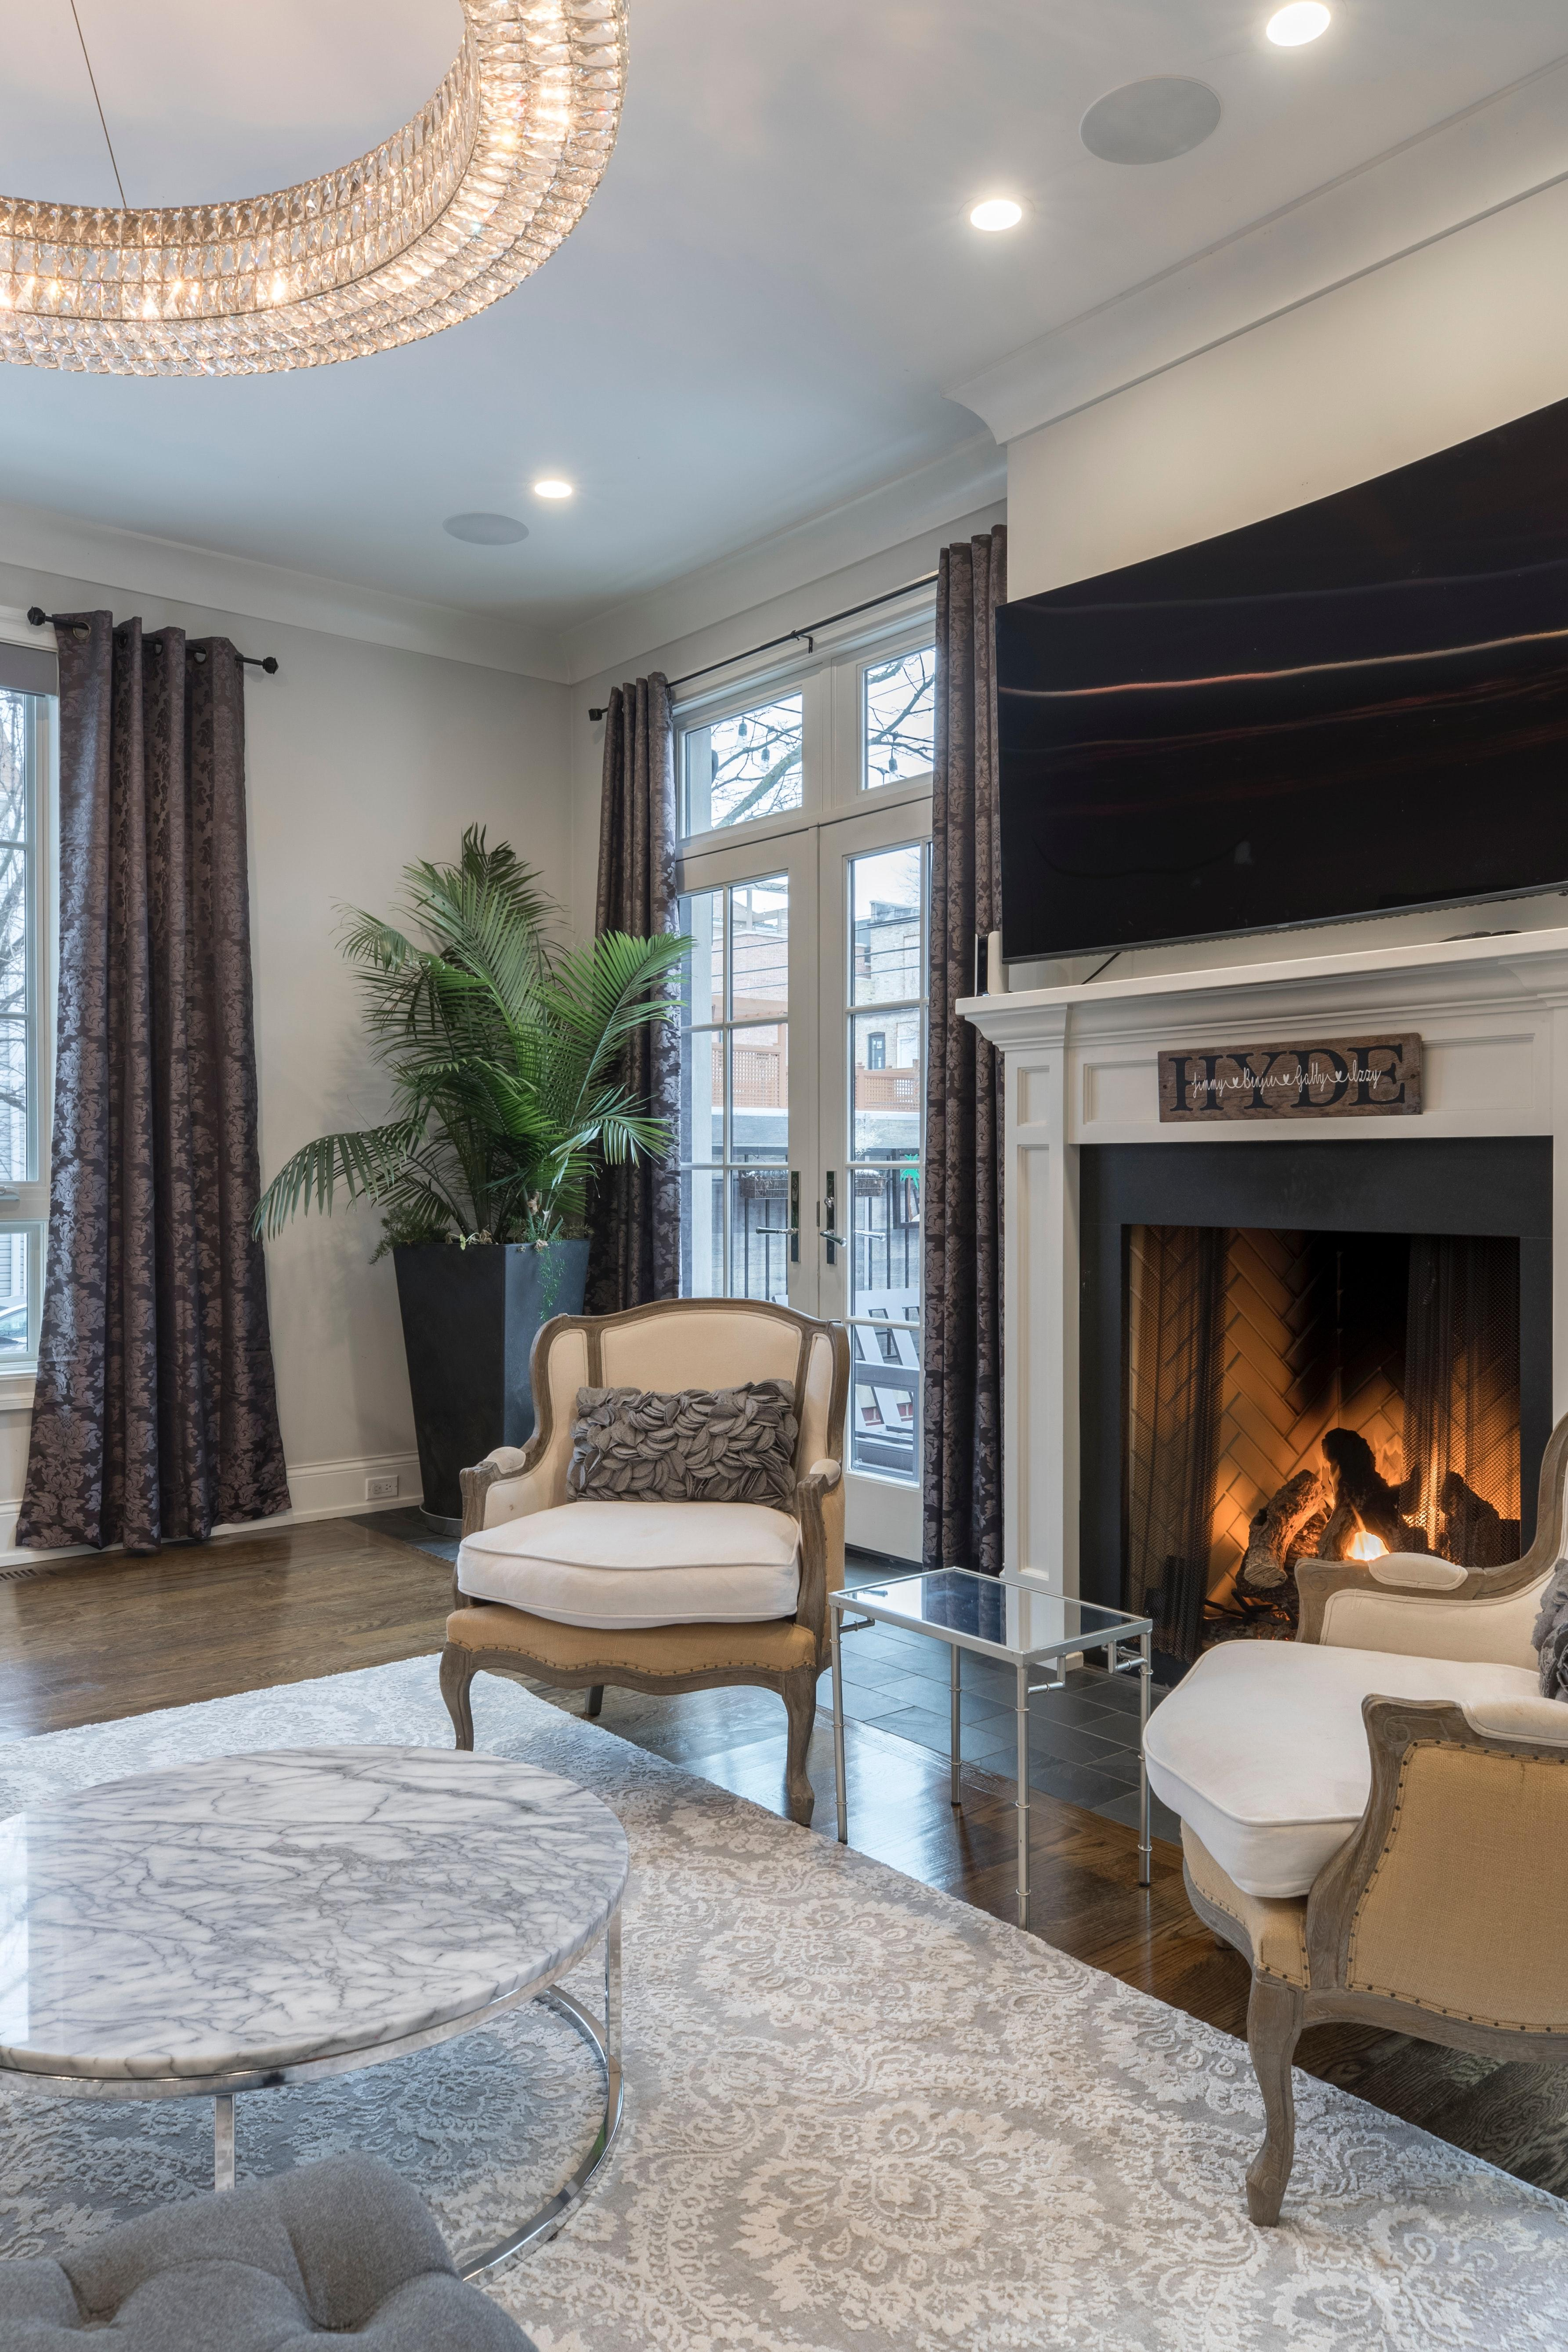 7 New Traditional Living Room Decor Ideas For An Elegant Home 2020